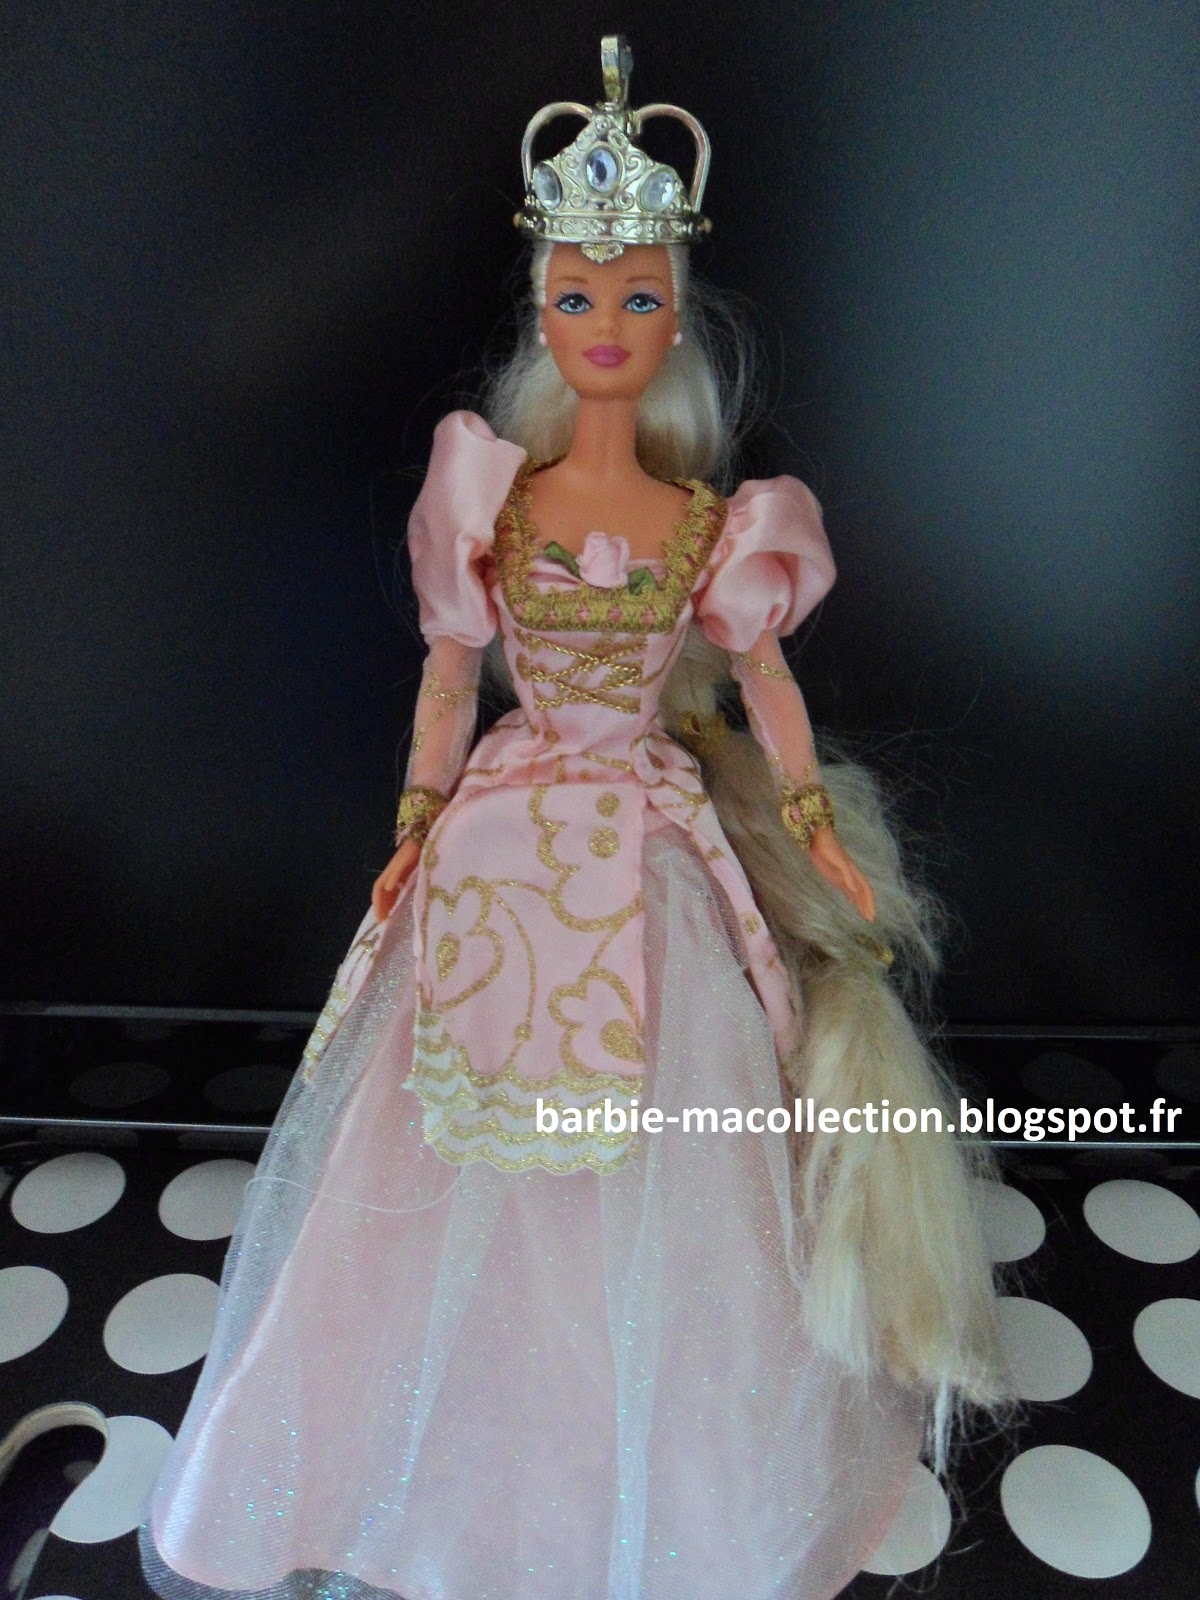 Ma collection de barbie barbie princesse raiponce 1997 - Princesse raiponce ...